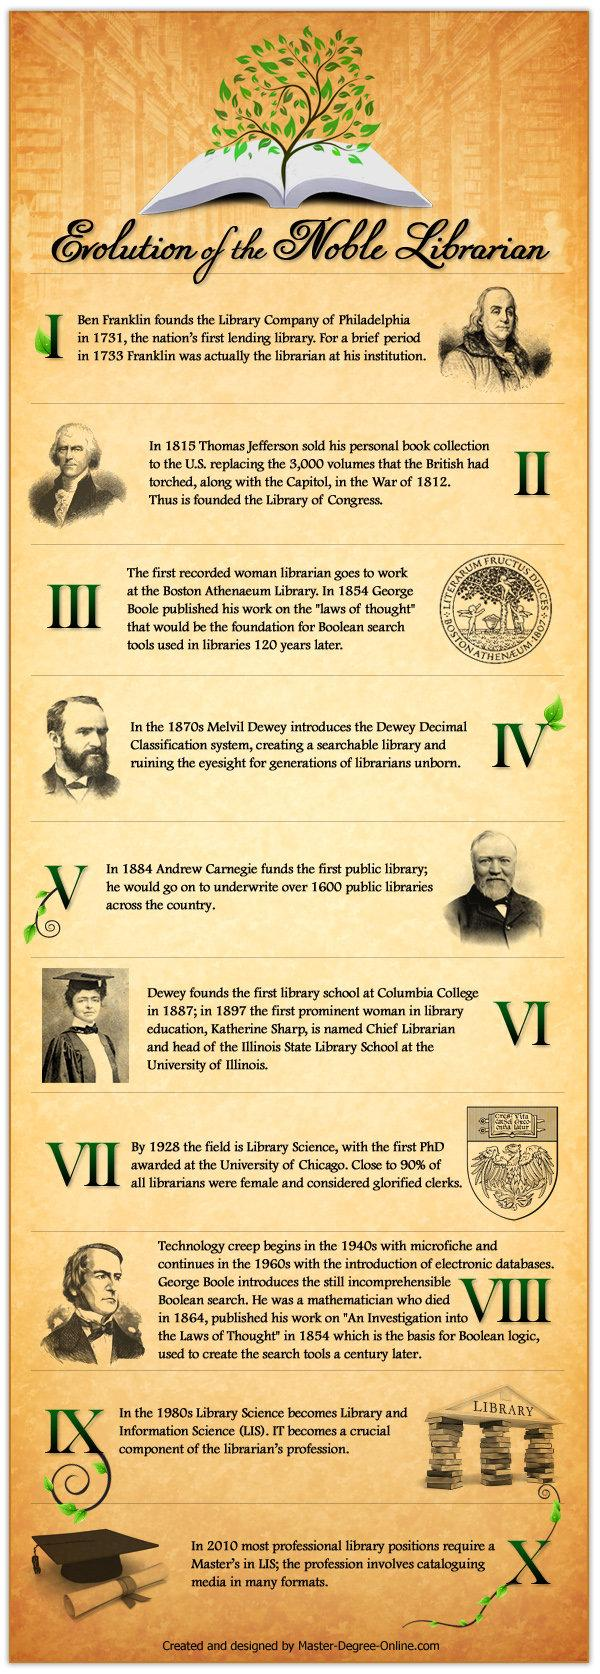 Evolution of the Noble Librarian #infographic